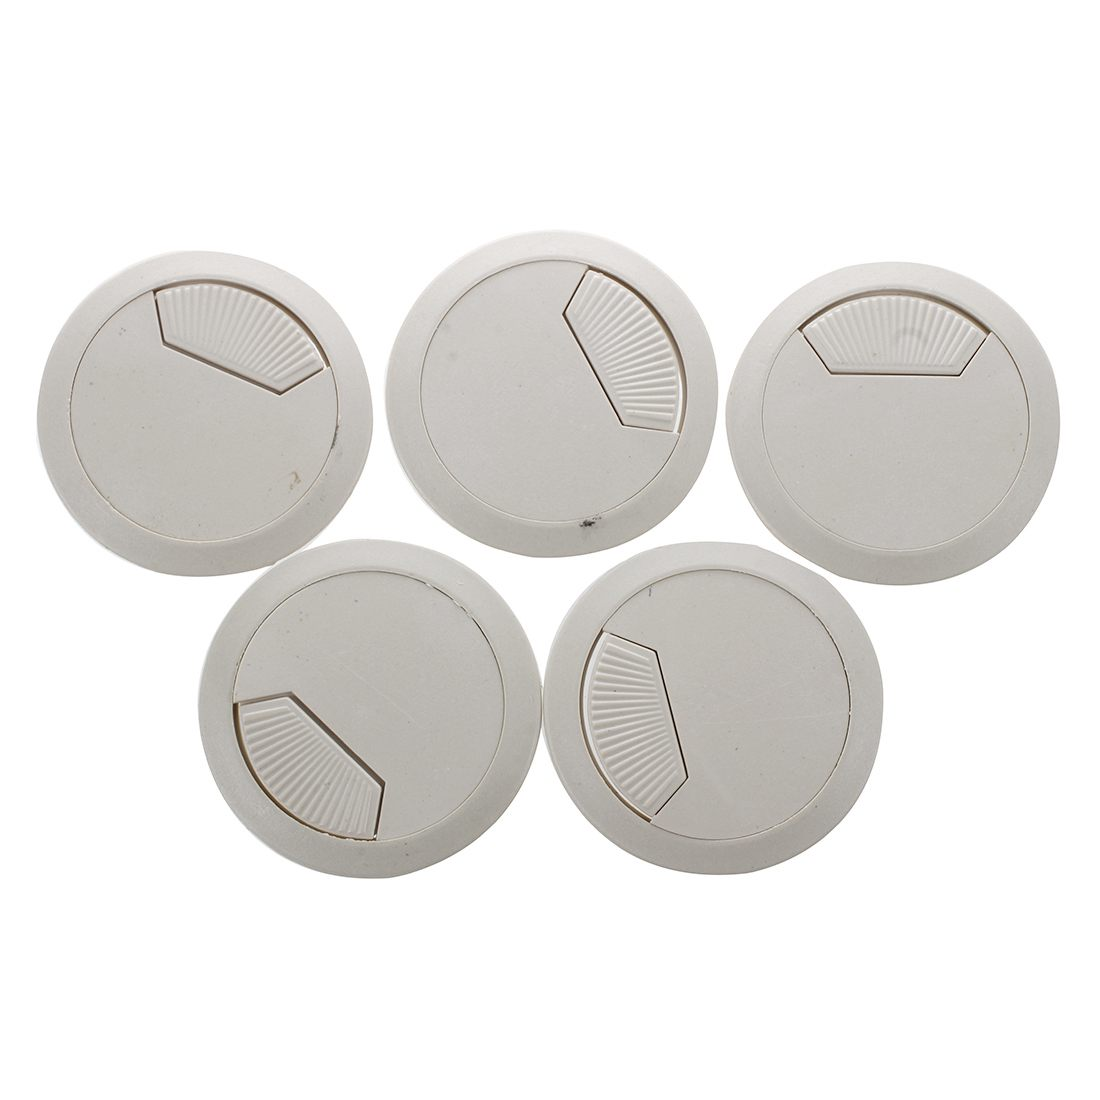 HOT GCZW-5 Piece Office Desk Table Computer 60 Mm Cable Pin Hole Cover- Gray